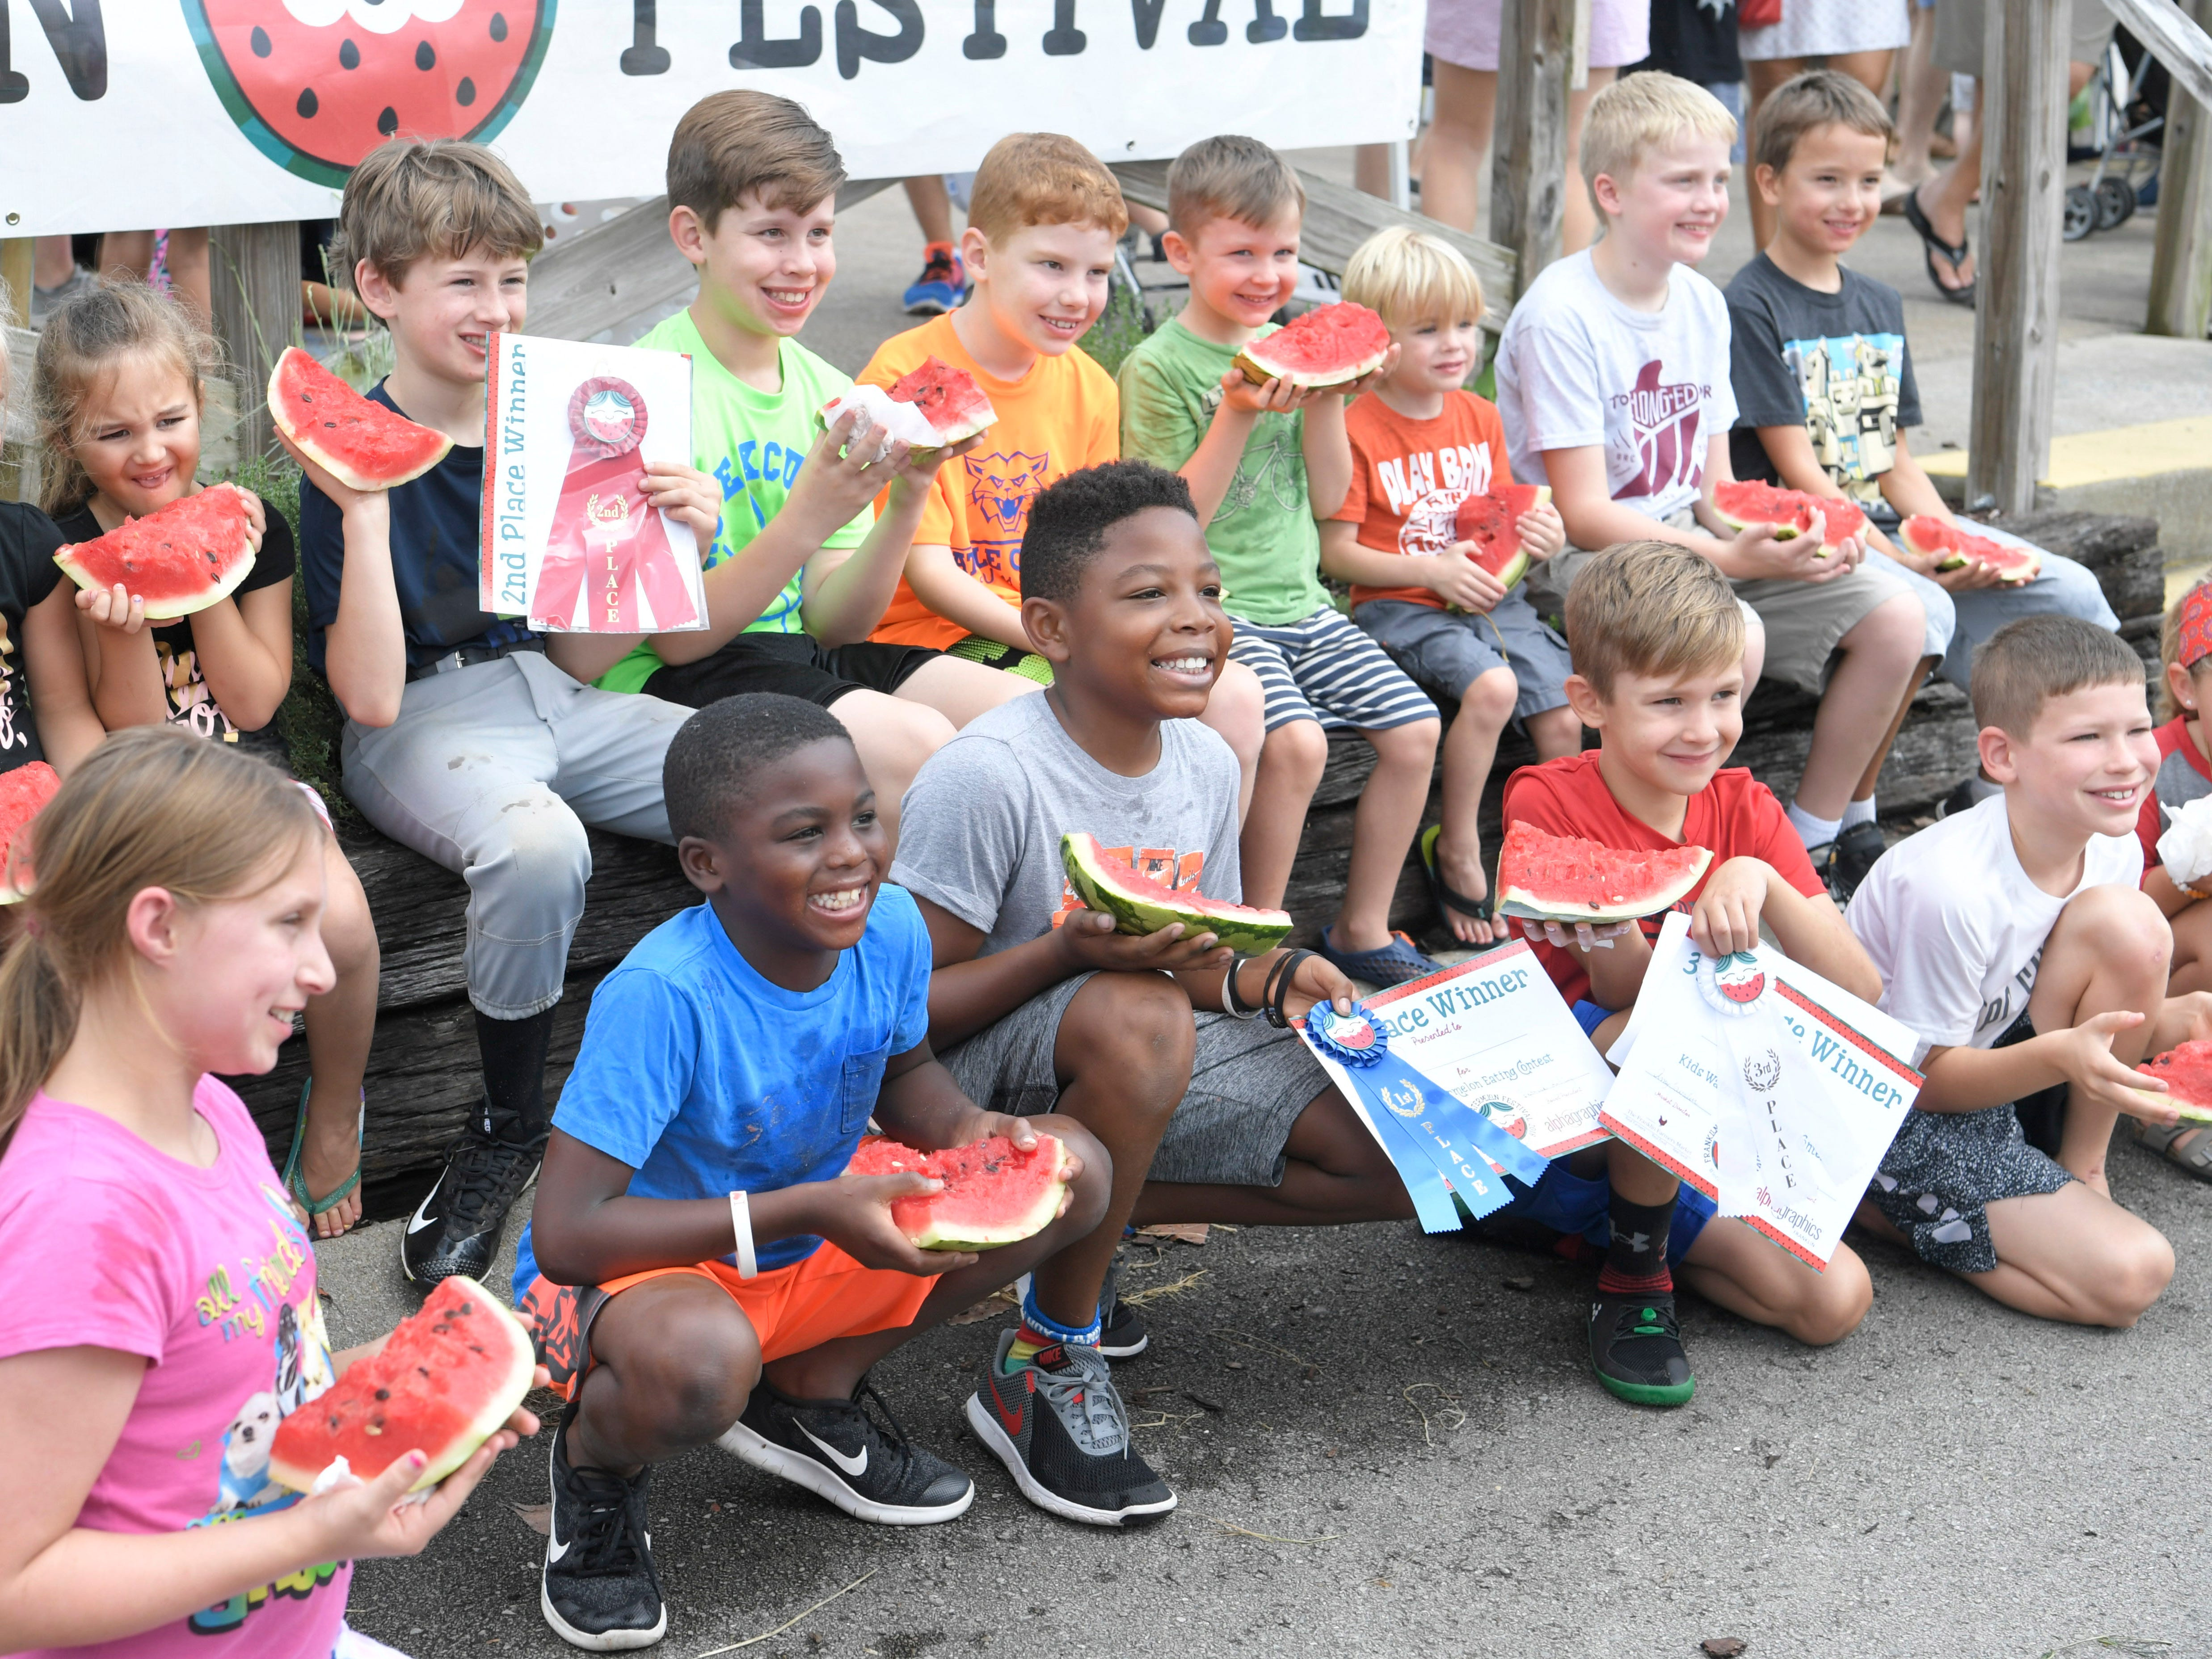 Children pose for a photograph after competing in the Franklin Watermelon Festival's watermelon eating contest at the Franklin Farmers Market in Franklin, Tenn. on Saturday, August 18, 2018.